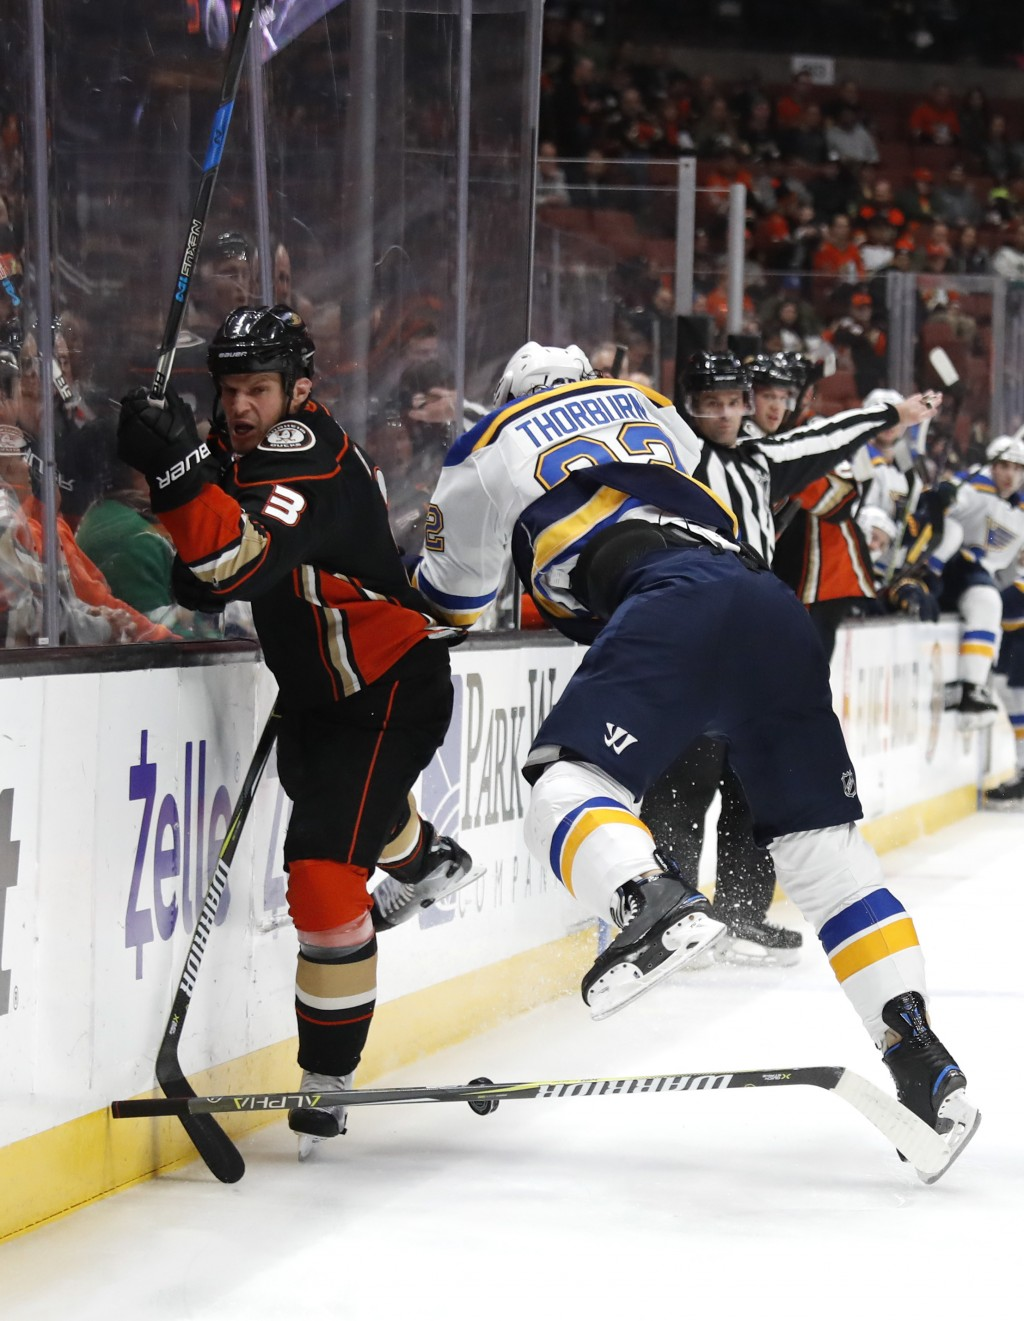 Anaheim Ducks' Kevin Bieksa, left, collides with St. Louis Blues' Chris Thorburn during the first period of an NHL hockey game Monday, March 12, 2018,